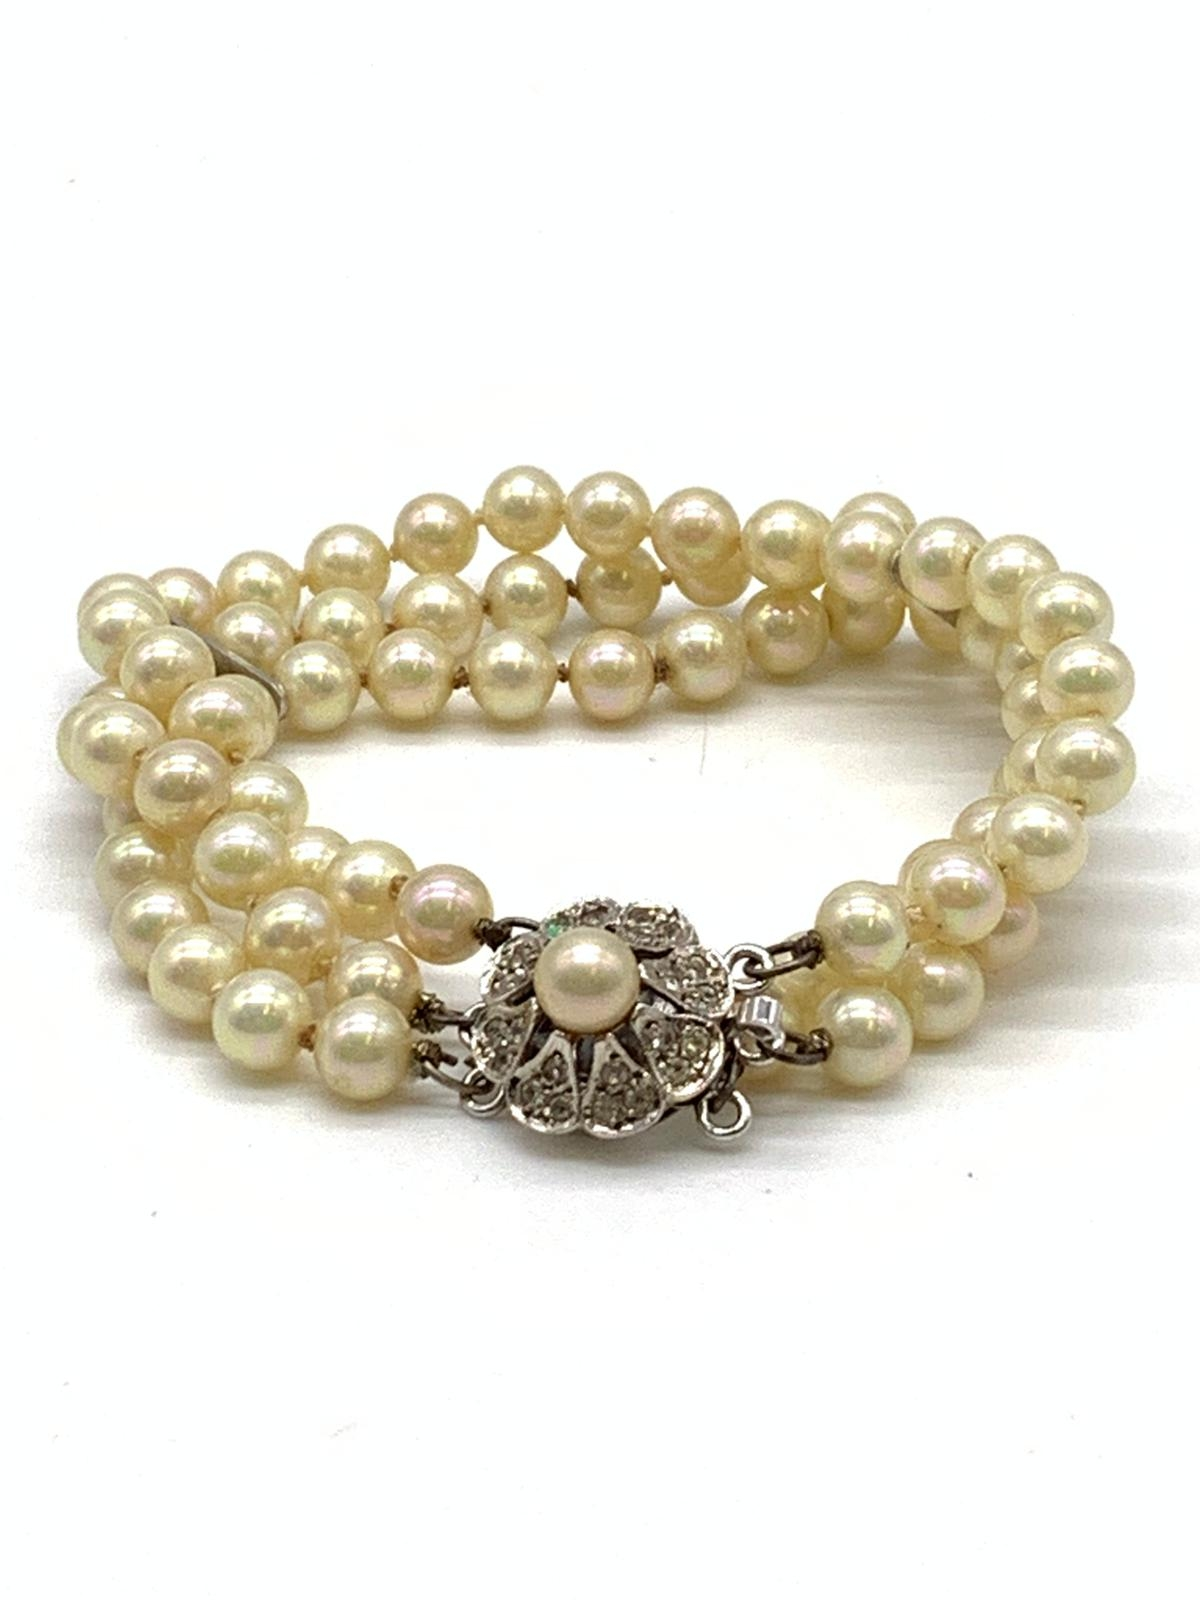 3 Strings Pearl Bracelet with Ornate Catch 16cm - Image 2 of 3